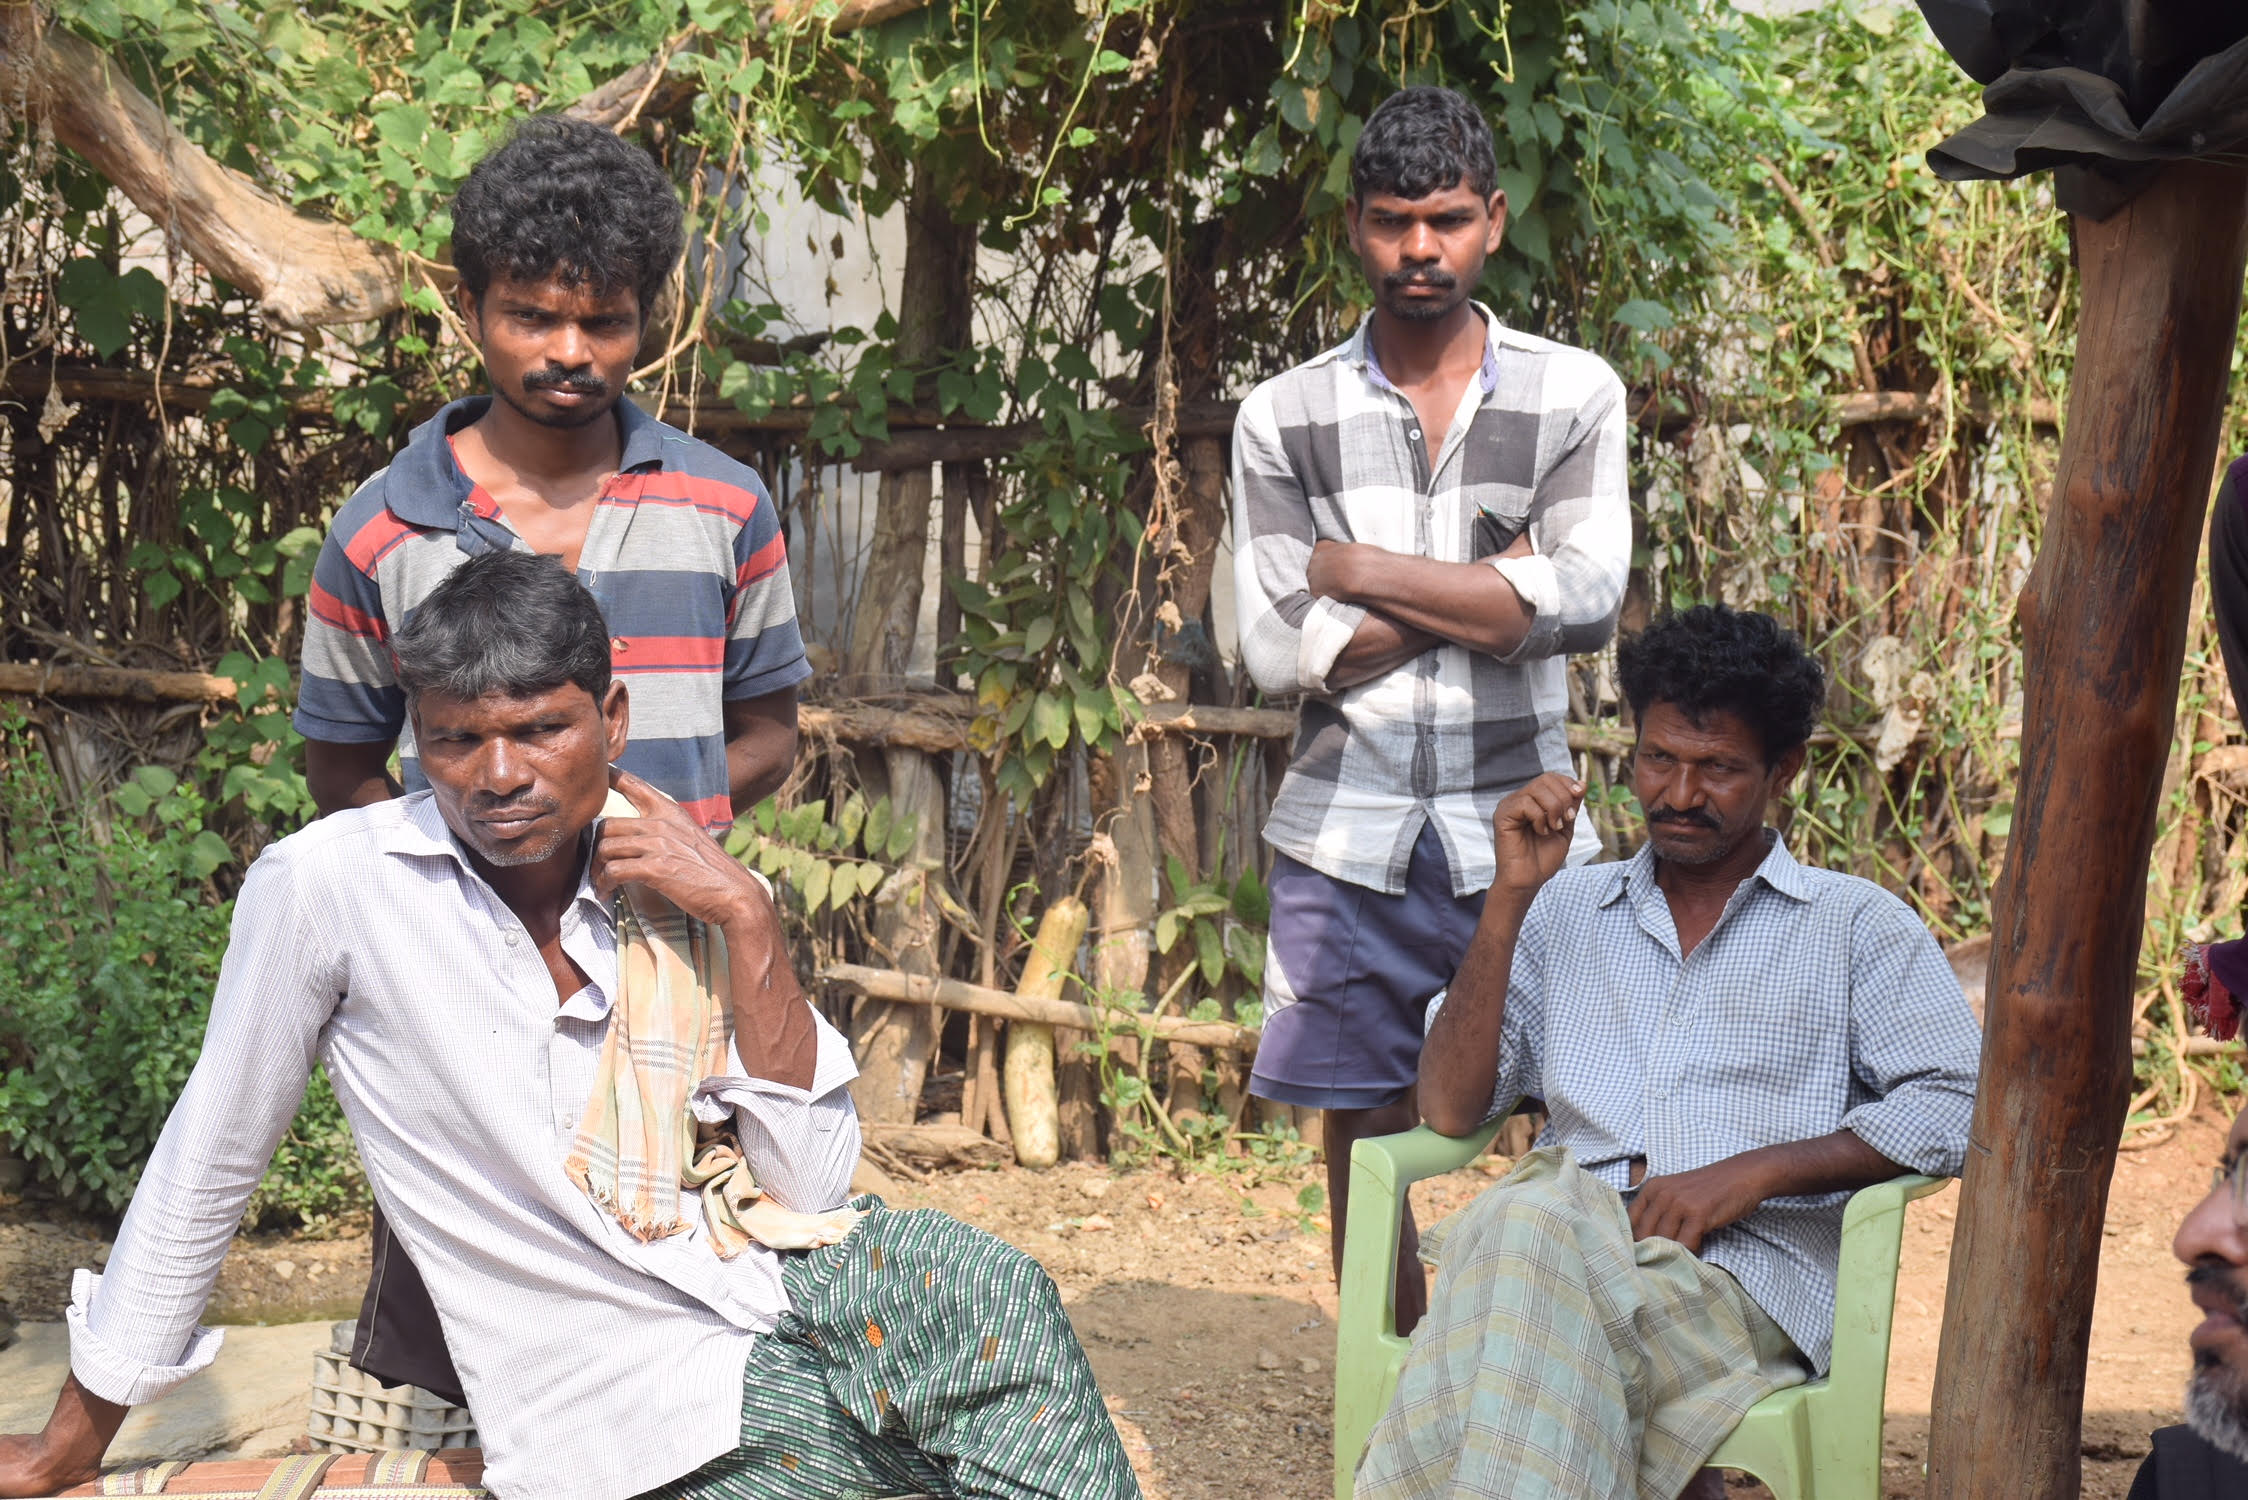 Battu Adinarayana's brother Narayana (sitting left) at their house in Gattumala village in Bhadradri Kothagudem district in eastern Telangana. Credit: Sukanya Shantha